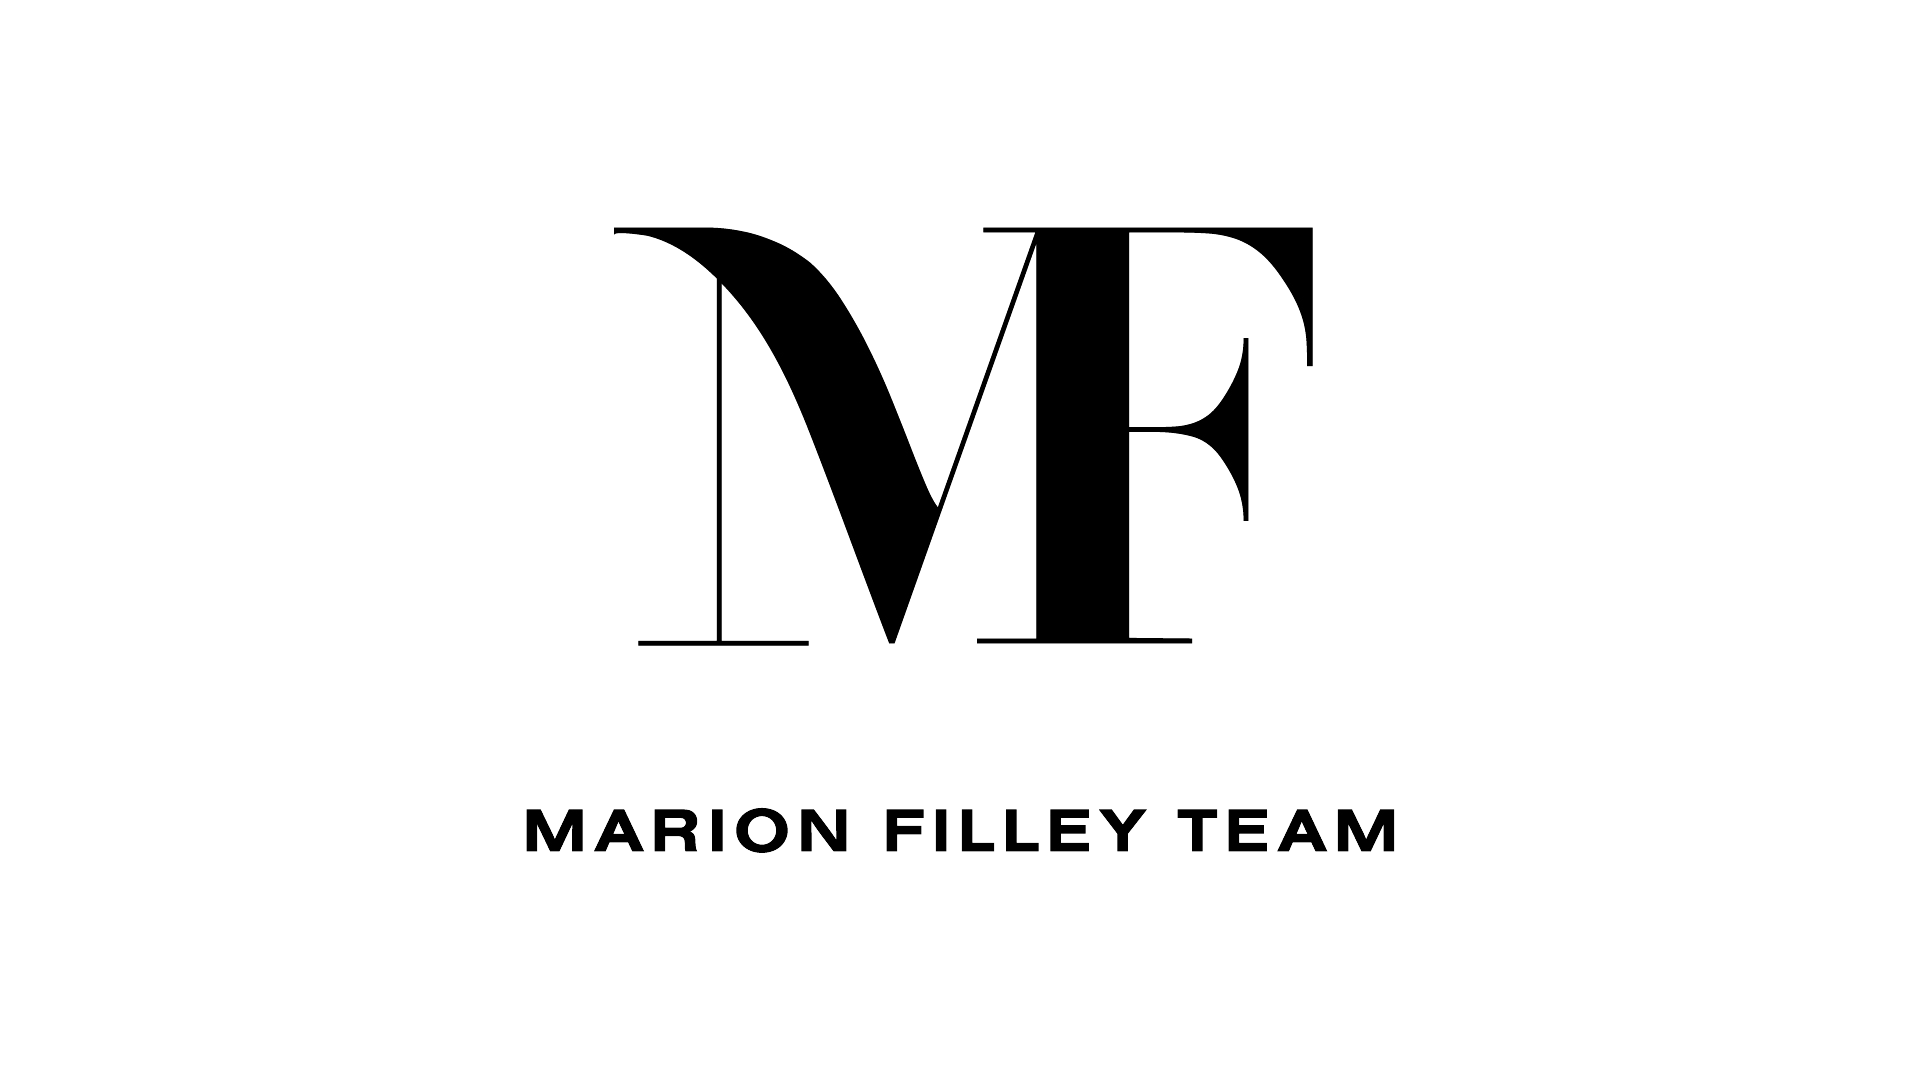 Marion Filley Team